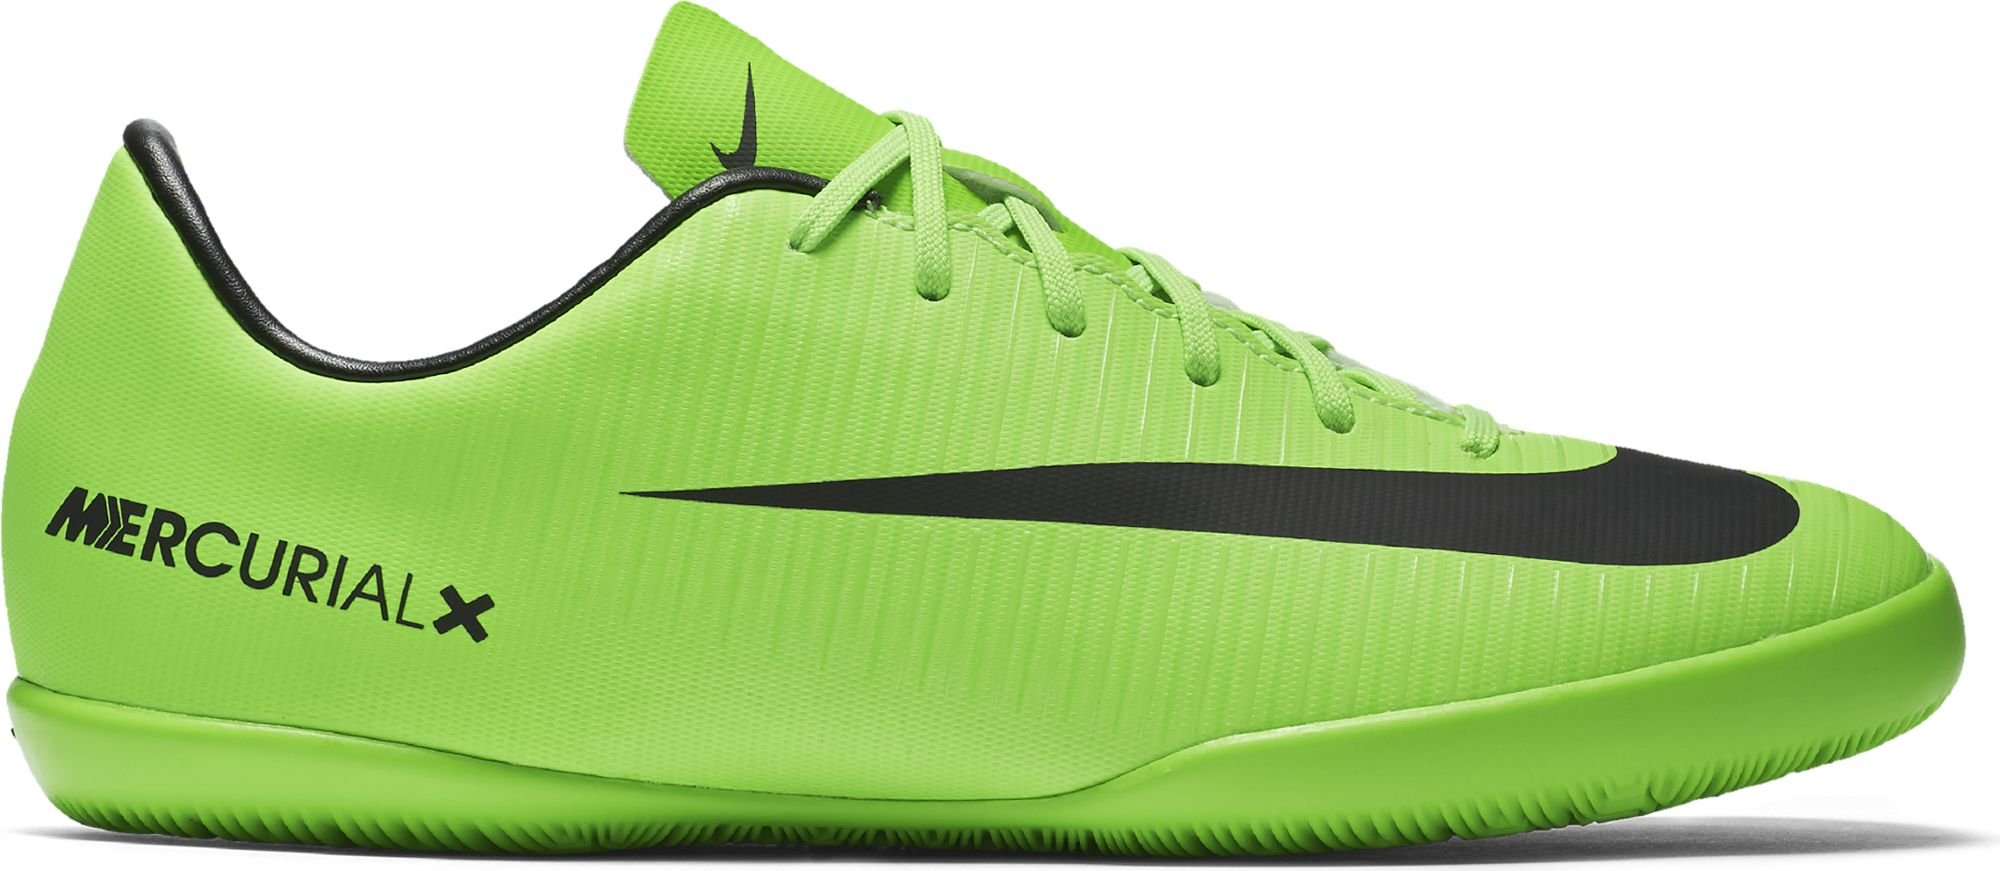 Nike Jr. Mercurial Victory VI IC Soccer Cleat (Electric Green), 5 Big Kids M